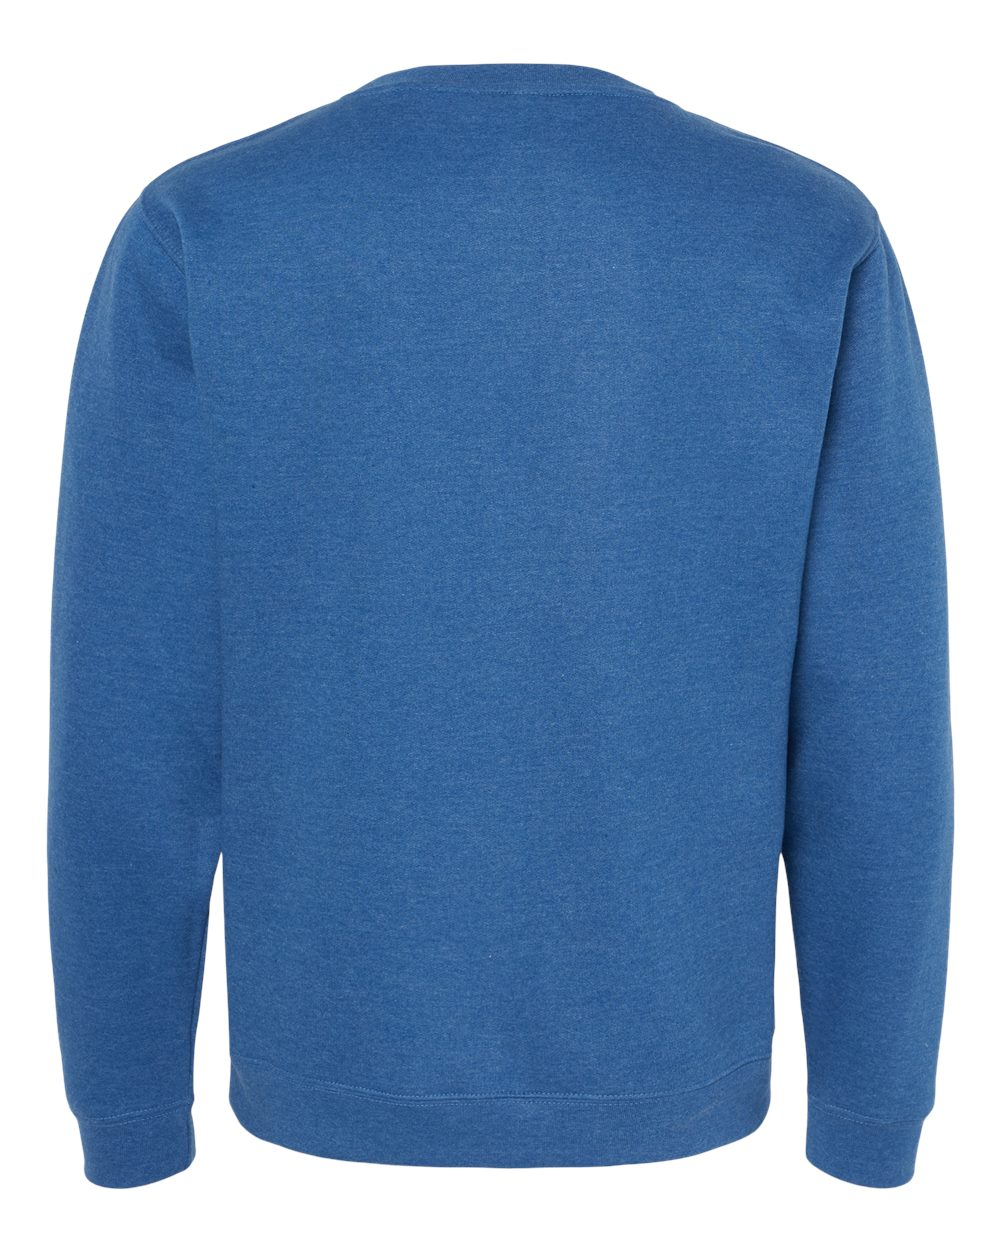 Independent-Trading-Co-Midweight-Crewneck-Sweatshirt-SS3000-up-to-3XL miniature 34